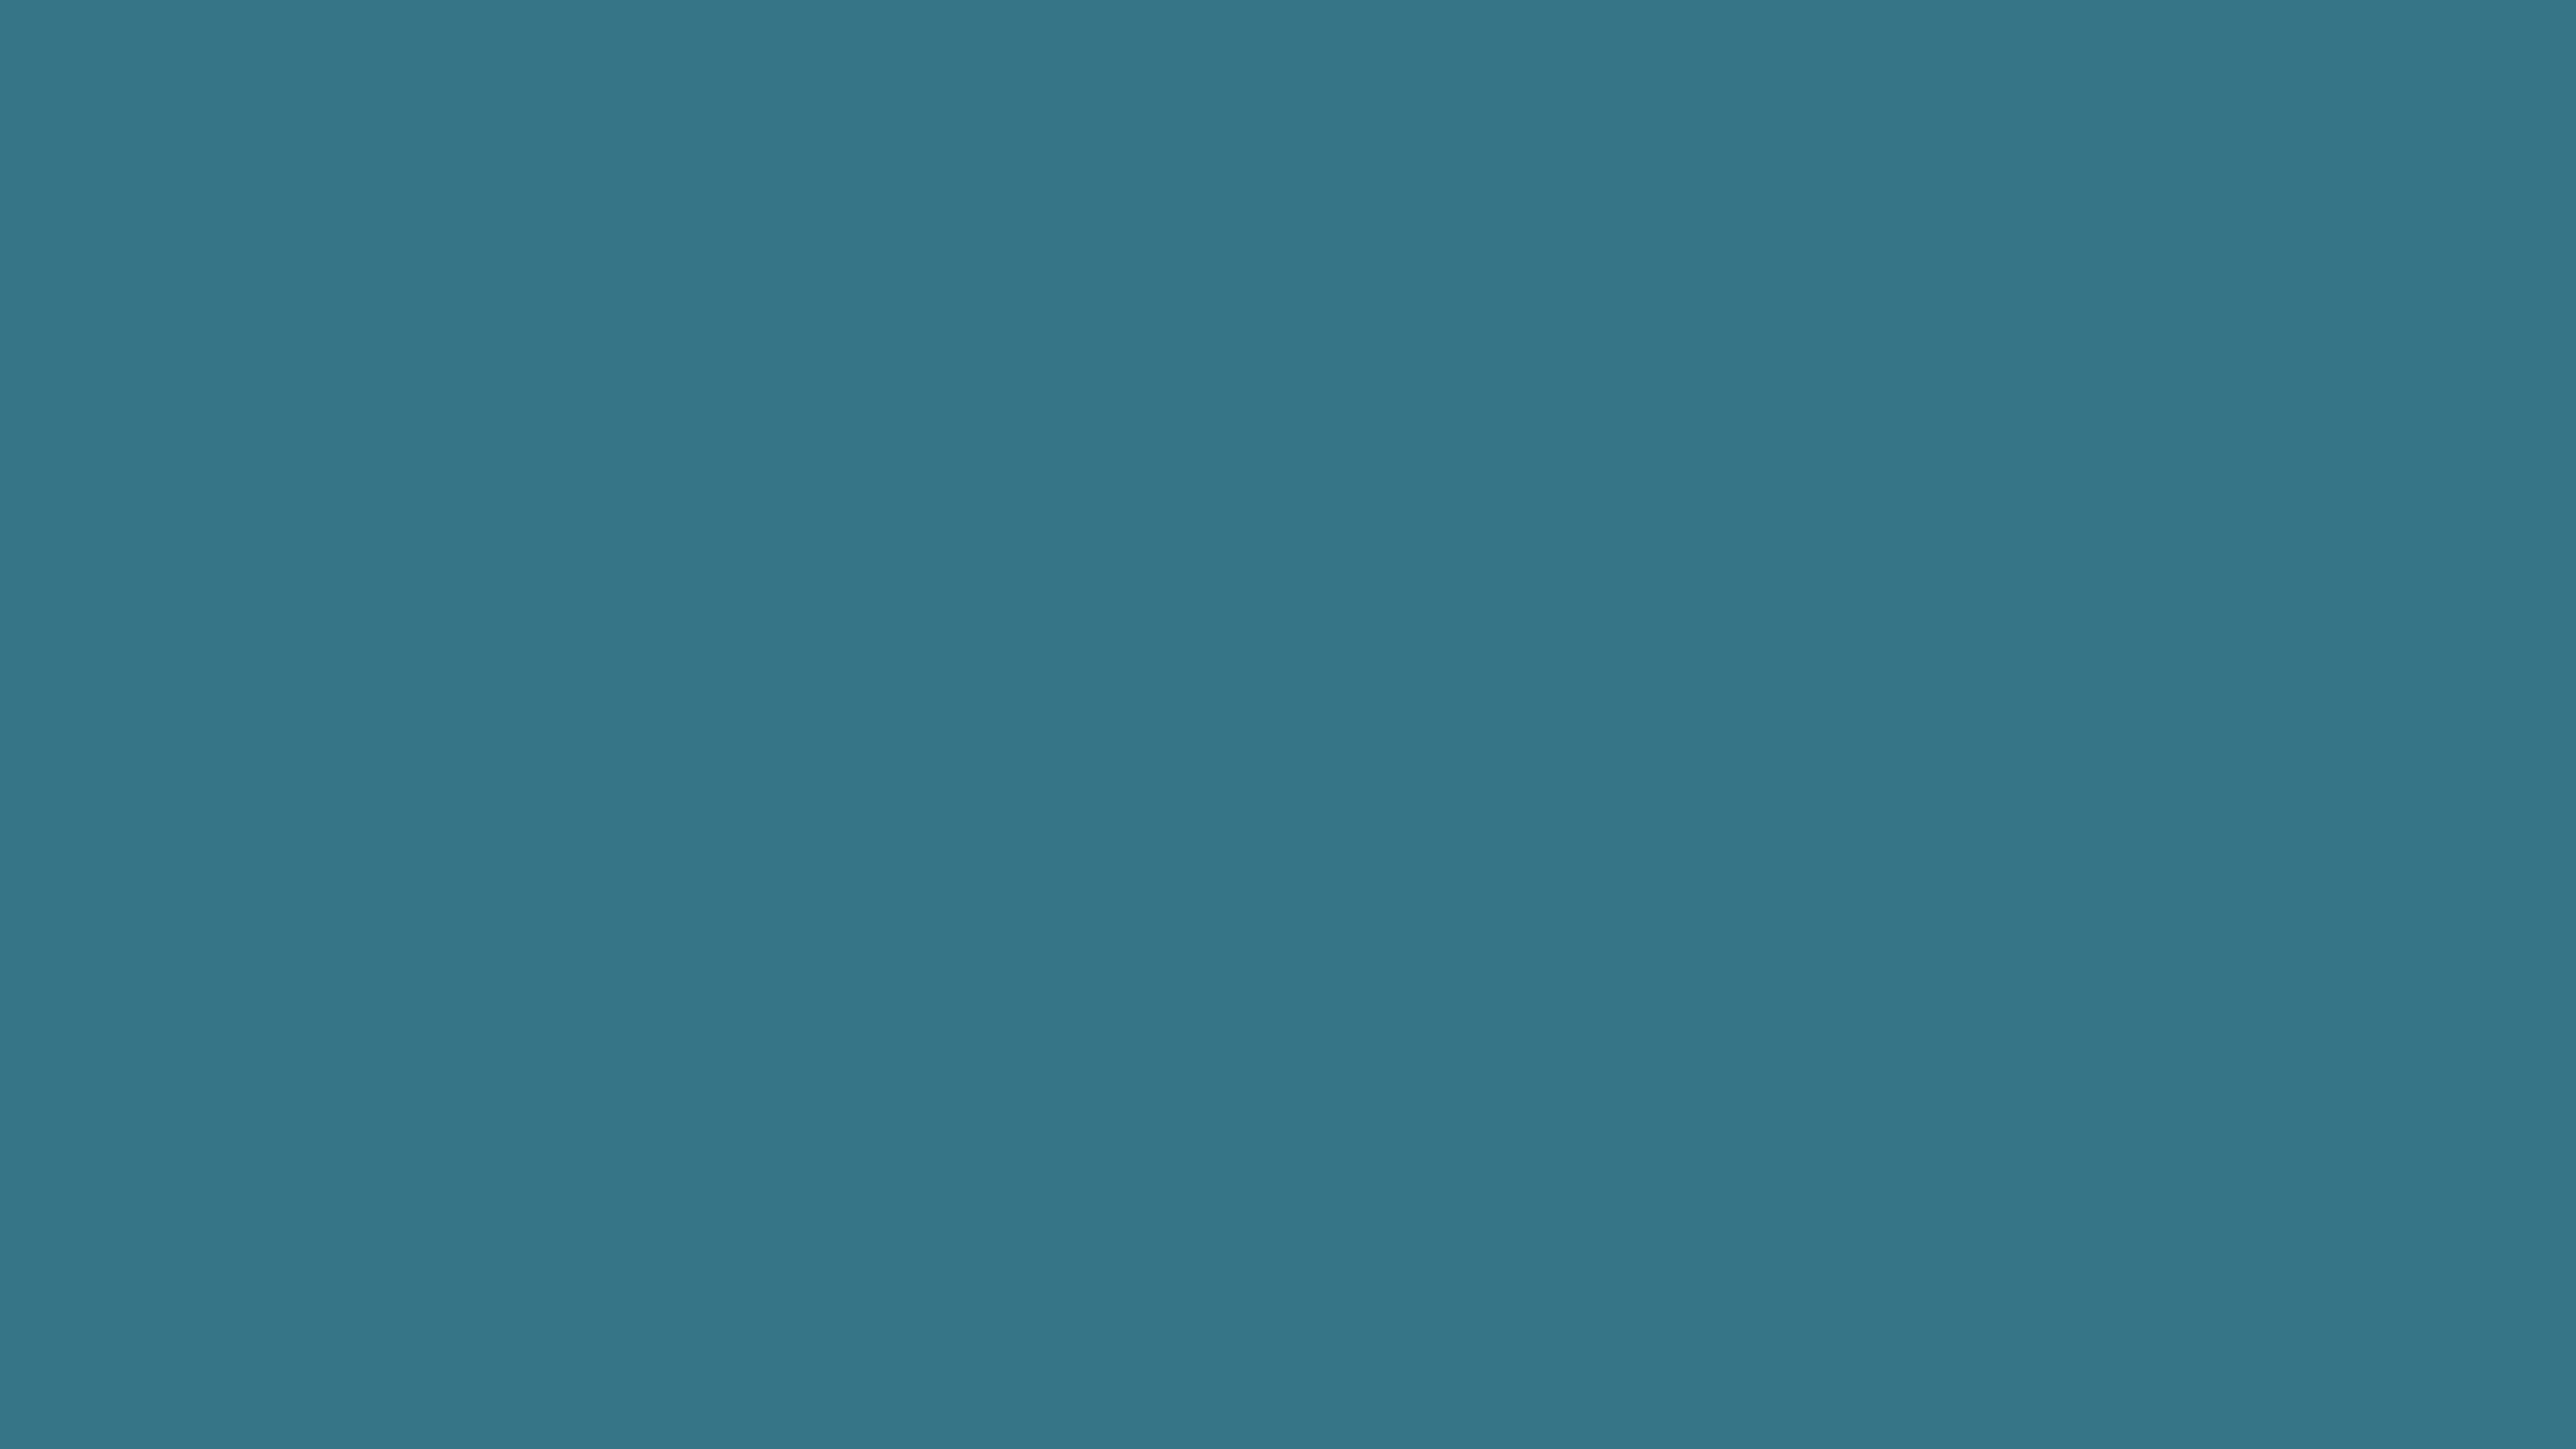 5120x2880 Teal Blue Solid Color Background